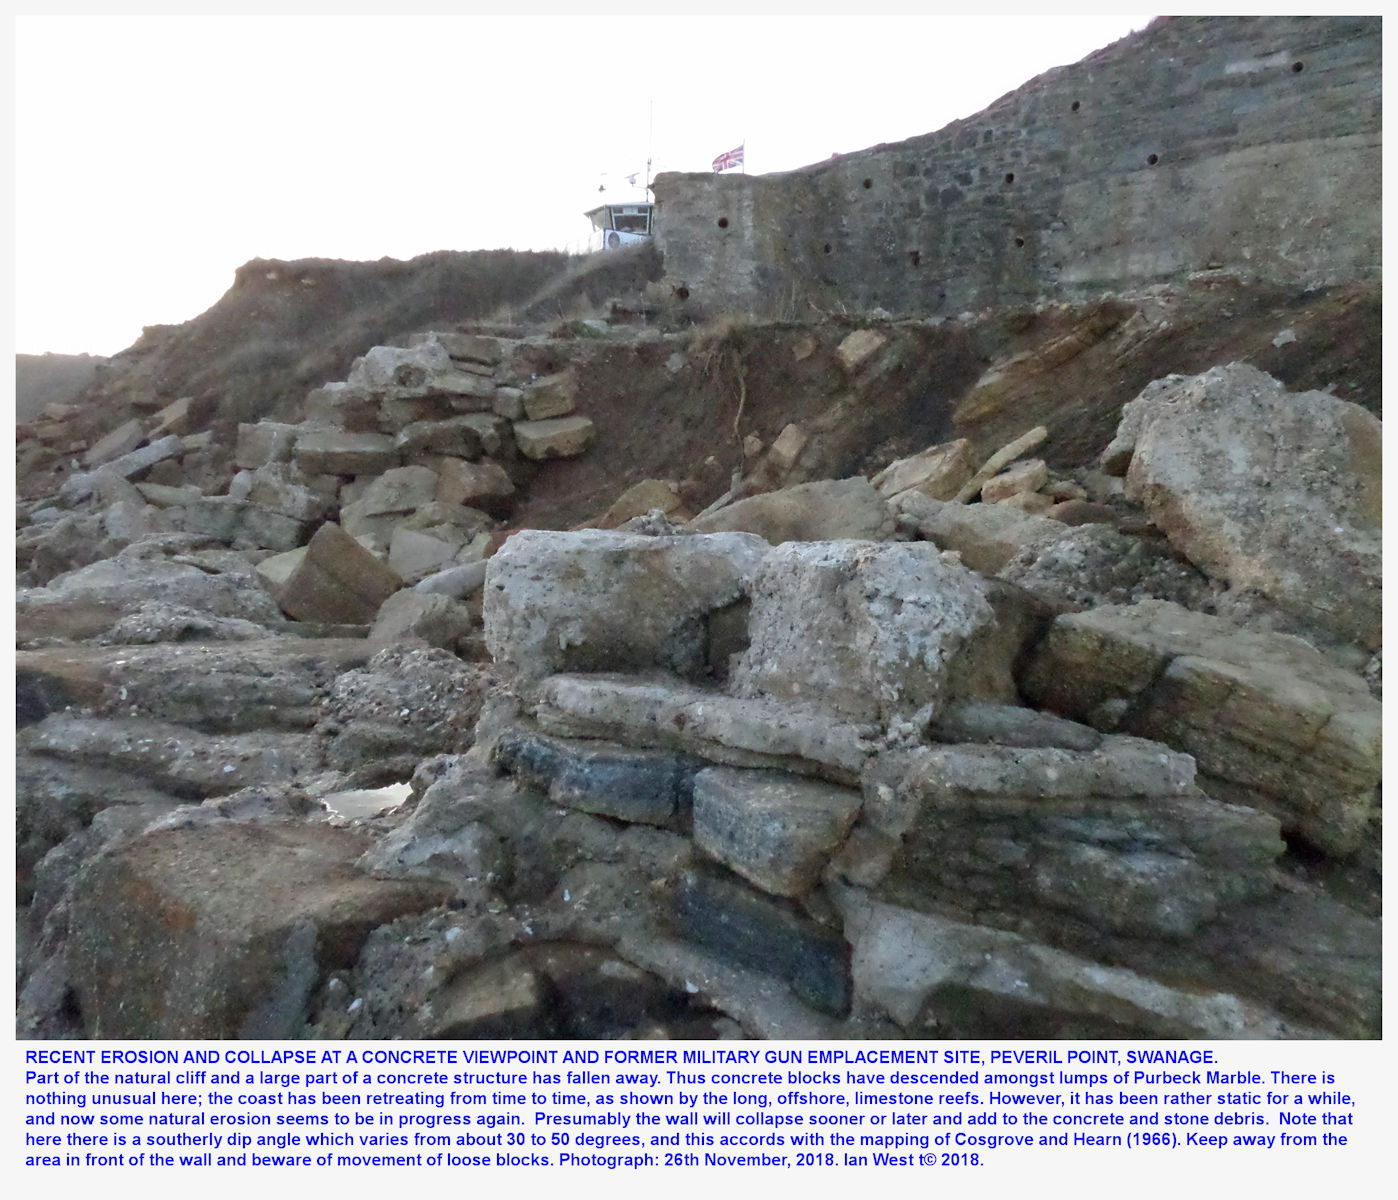 Collapse of concrete at a former gun emplacment and subsequent viewpoint, Peveril Point, showing south-dipping Purbeck Marble